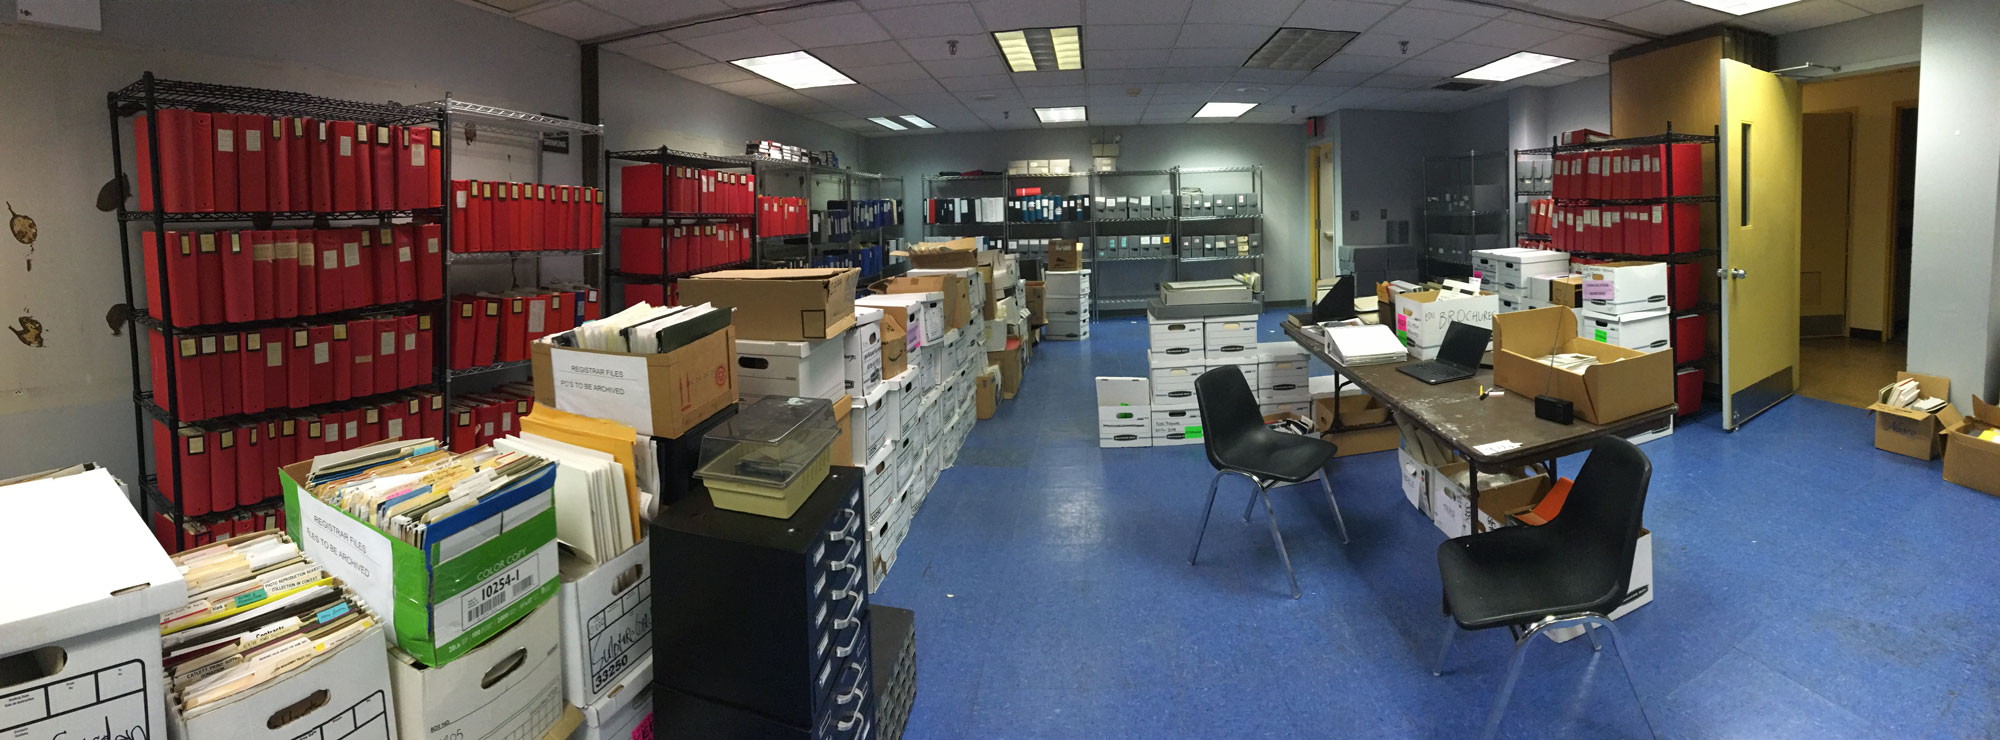 A panaromic view of a large office space with shelves of red folders lining the walls and file boxes in down the middle.